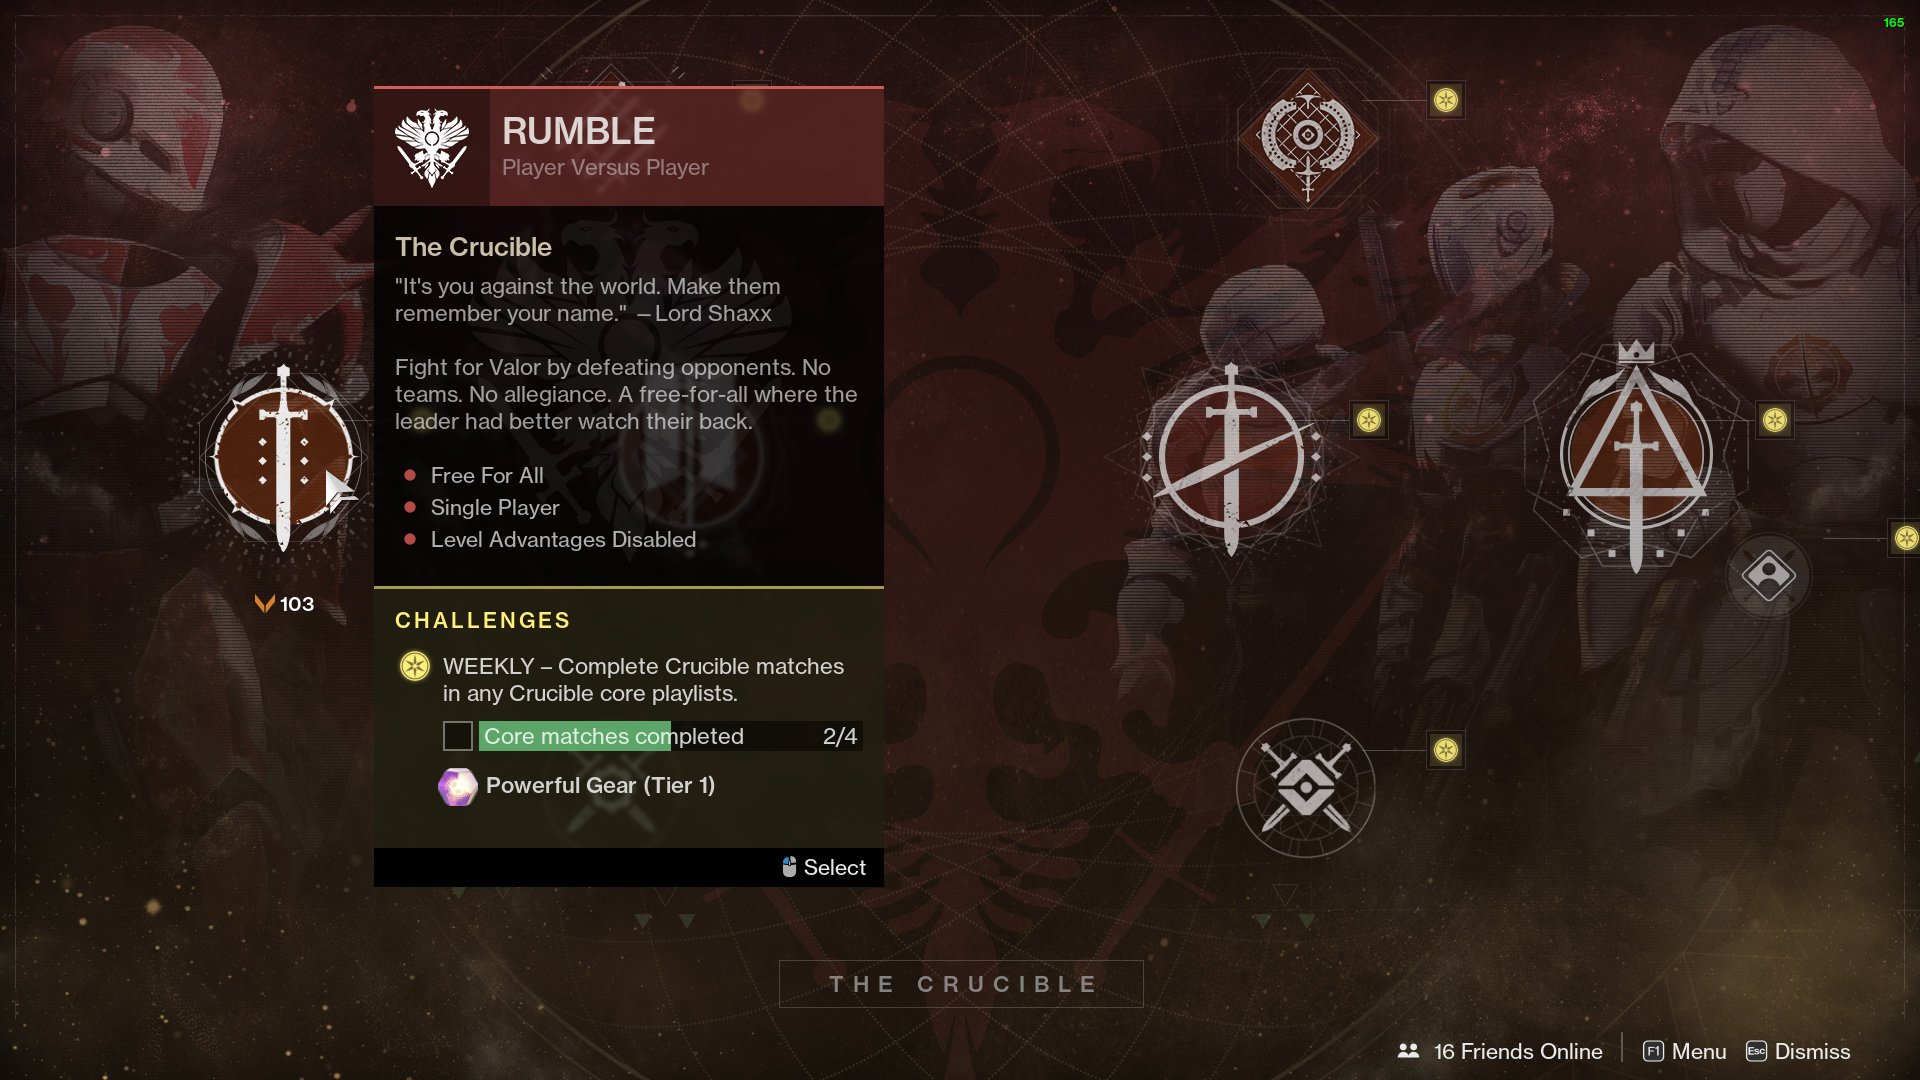 Destiny 2 Crucible Rumble